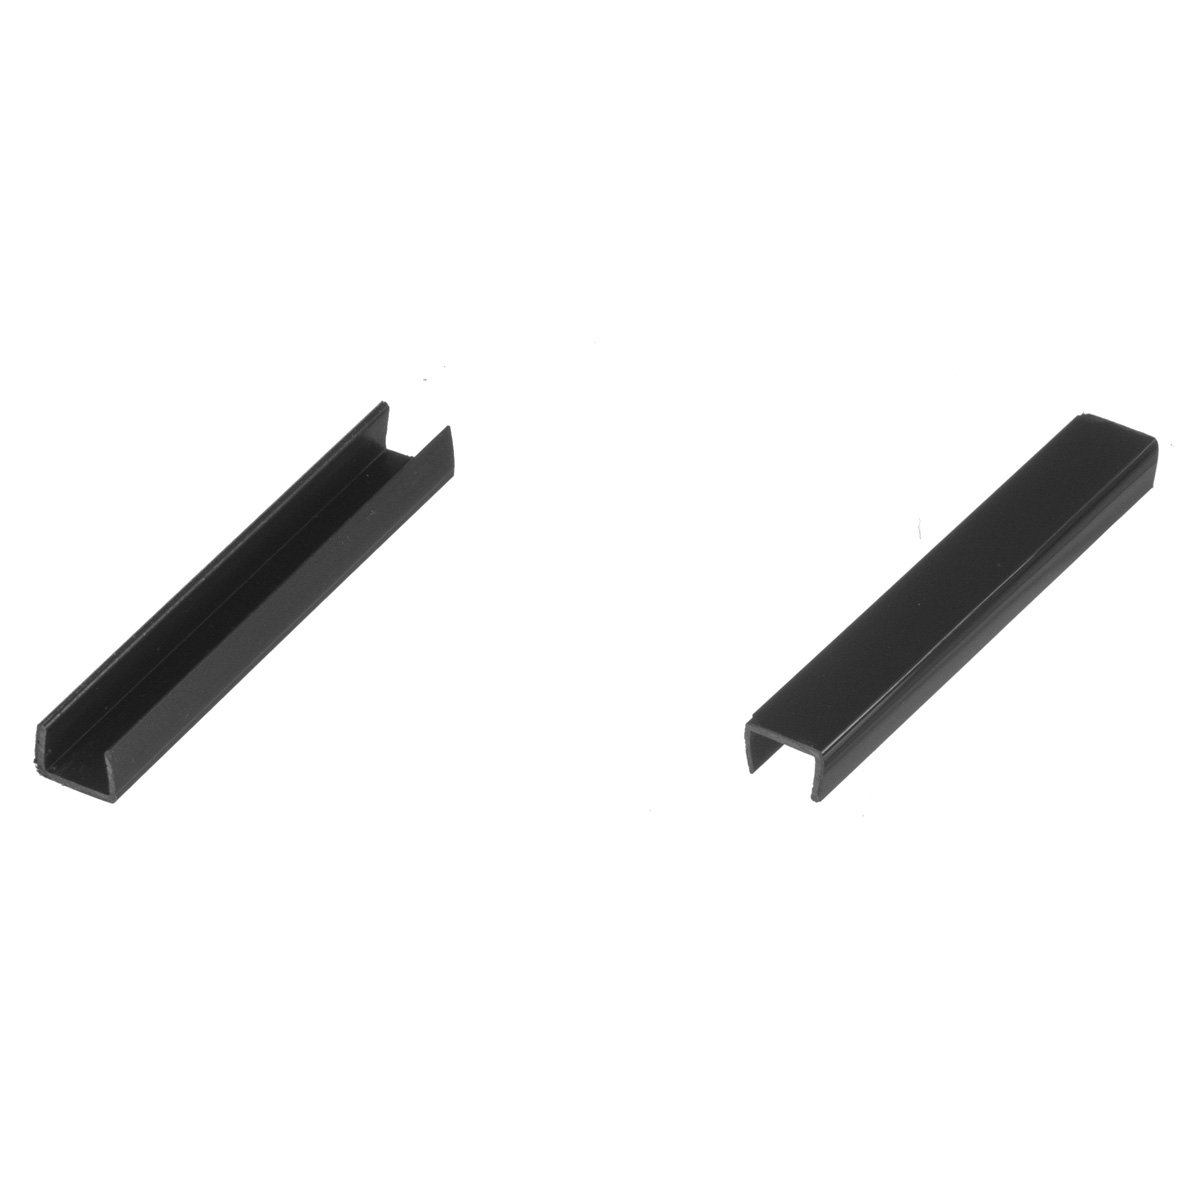 HOLZBRINK Connector for Kitchen Plinth Sealing Strips Kit Set HBK15 150 cm Kitchen Kickboard Skirting 150 mm BLACK GLOSS Base Plate